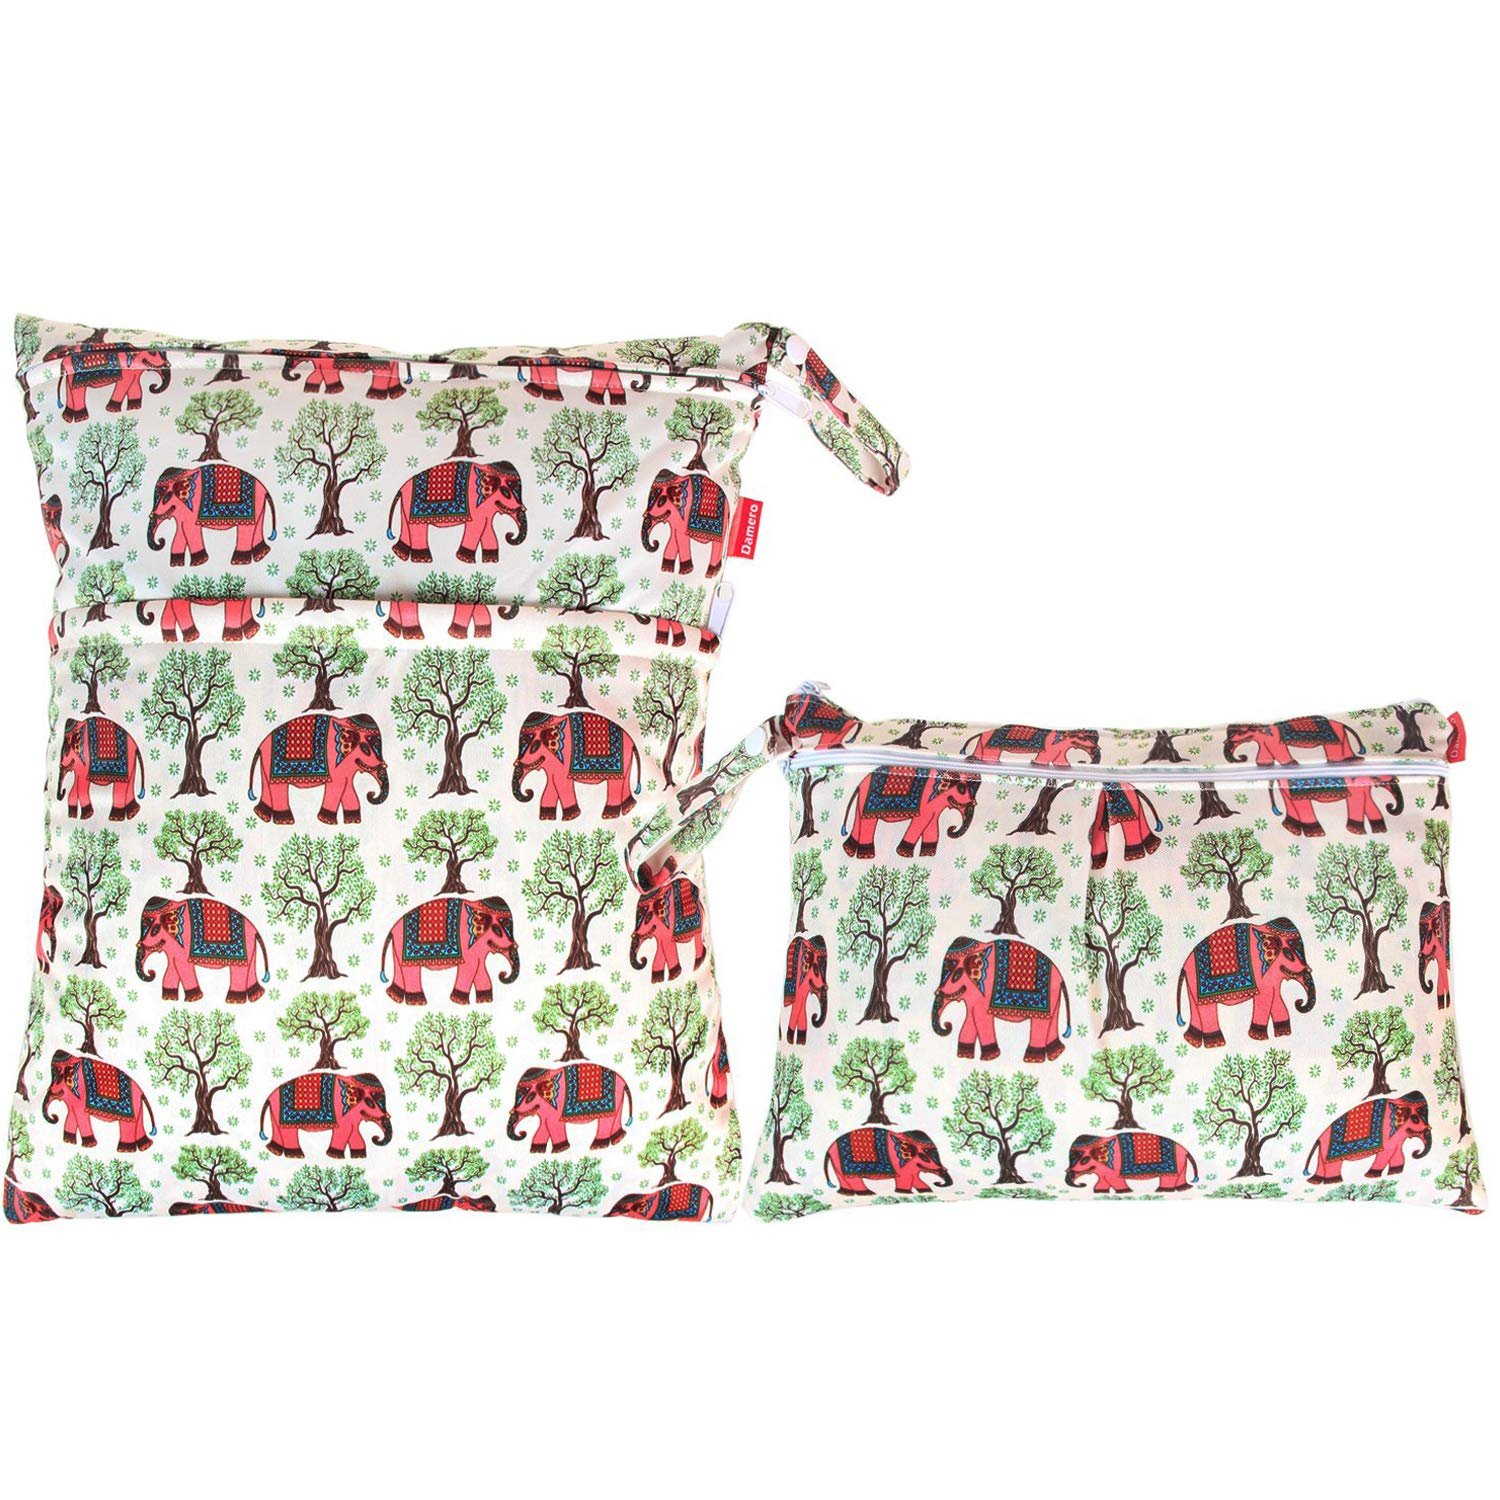 Damero 2pcs Travel Wet and Dry Bag, Reusable Wet Bags Organizer with Two Zippered Pocket for Cloth Diaper, Pumping Parts, Swimsuit and Gym, Elephants